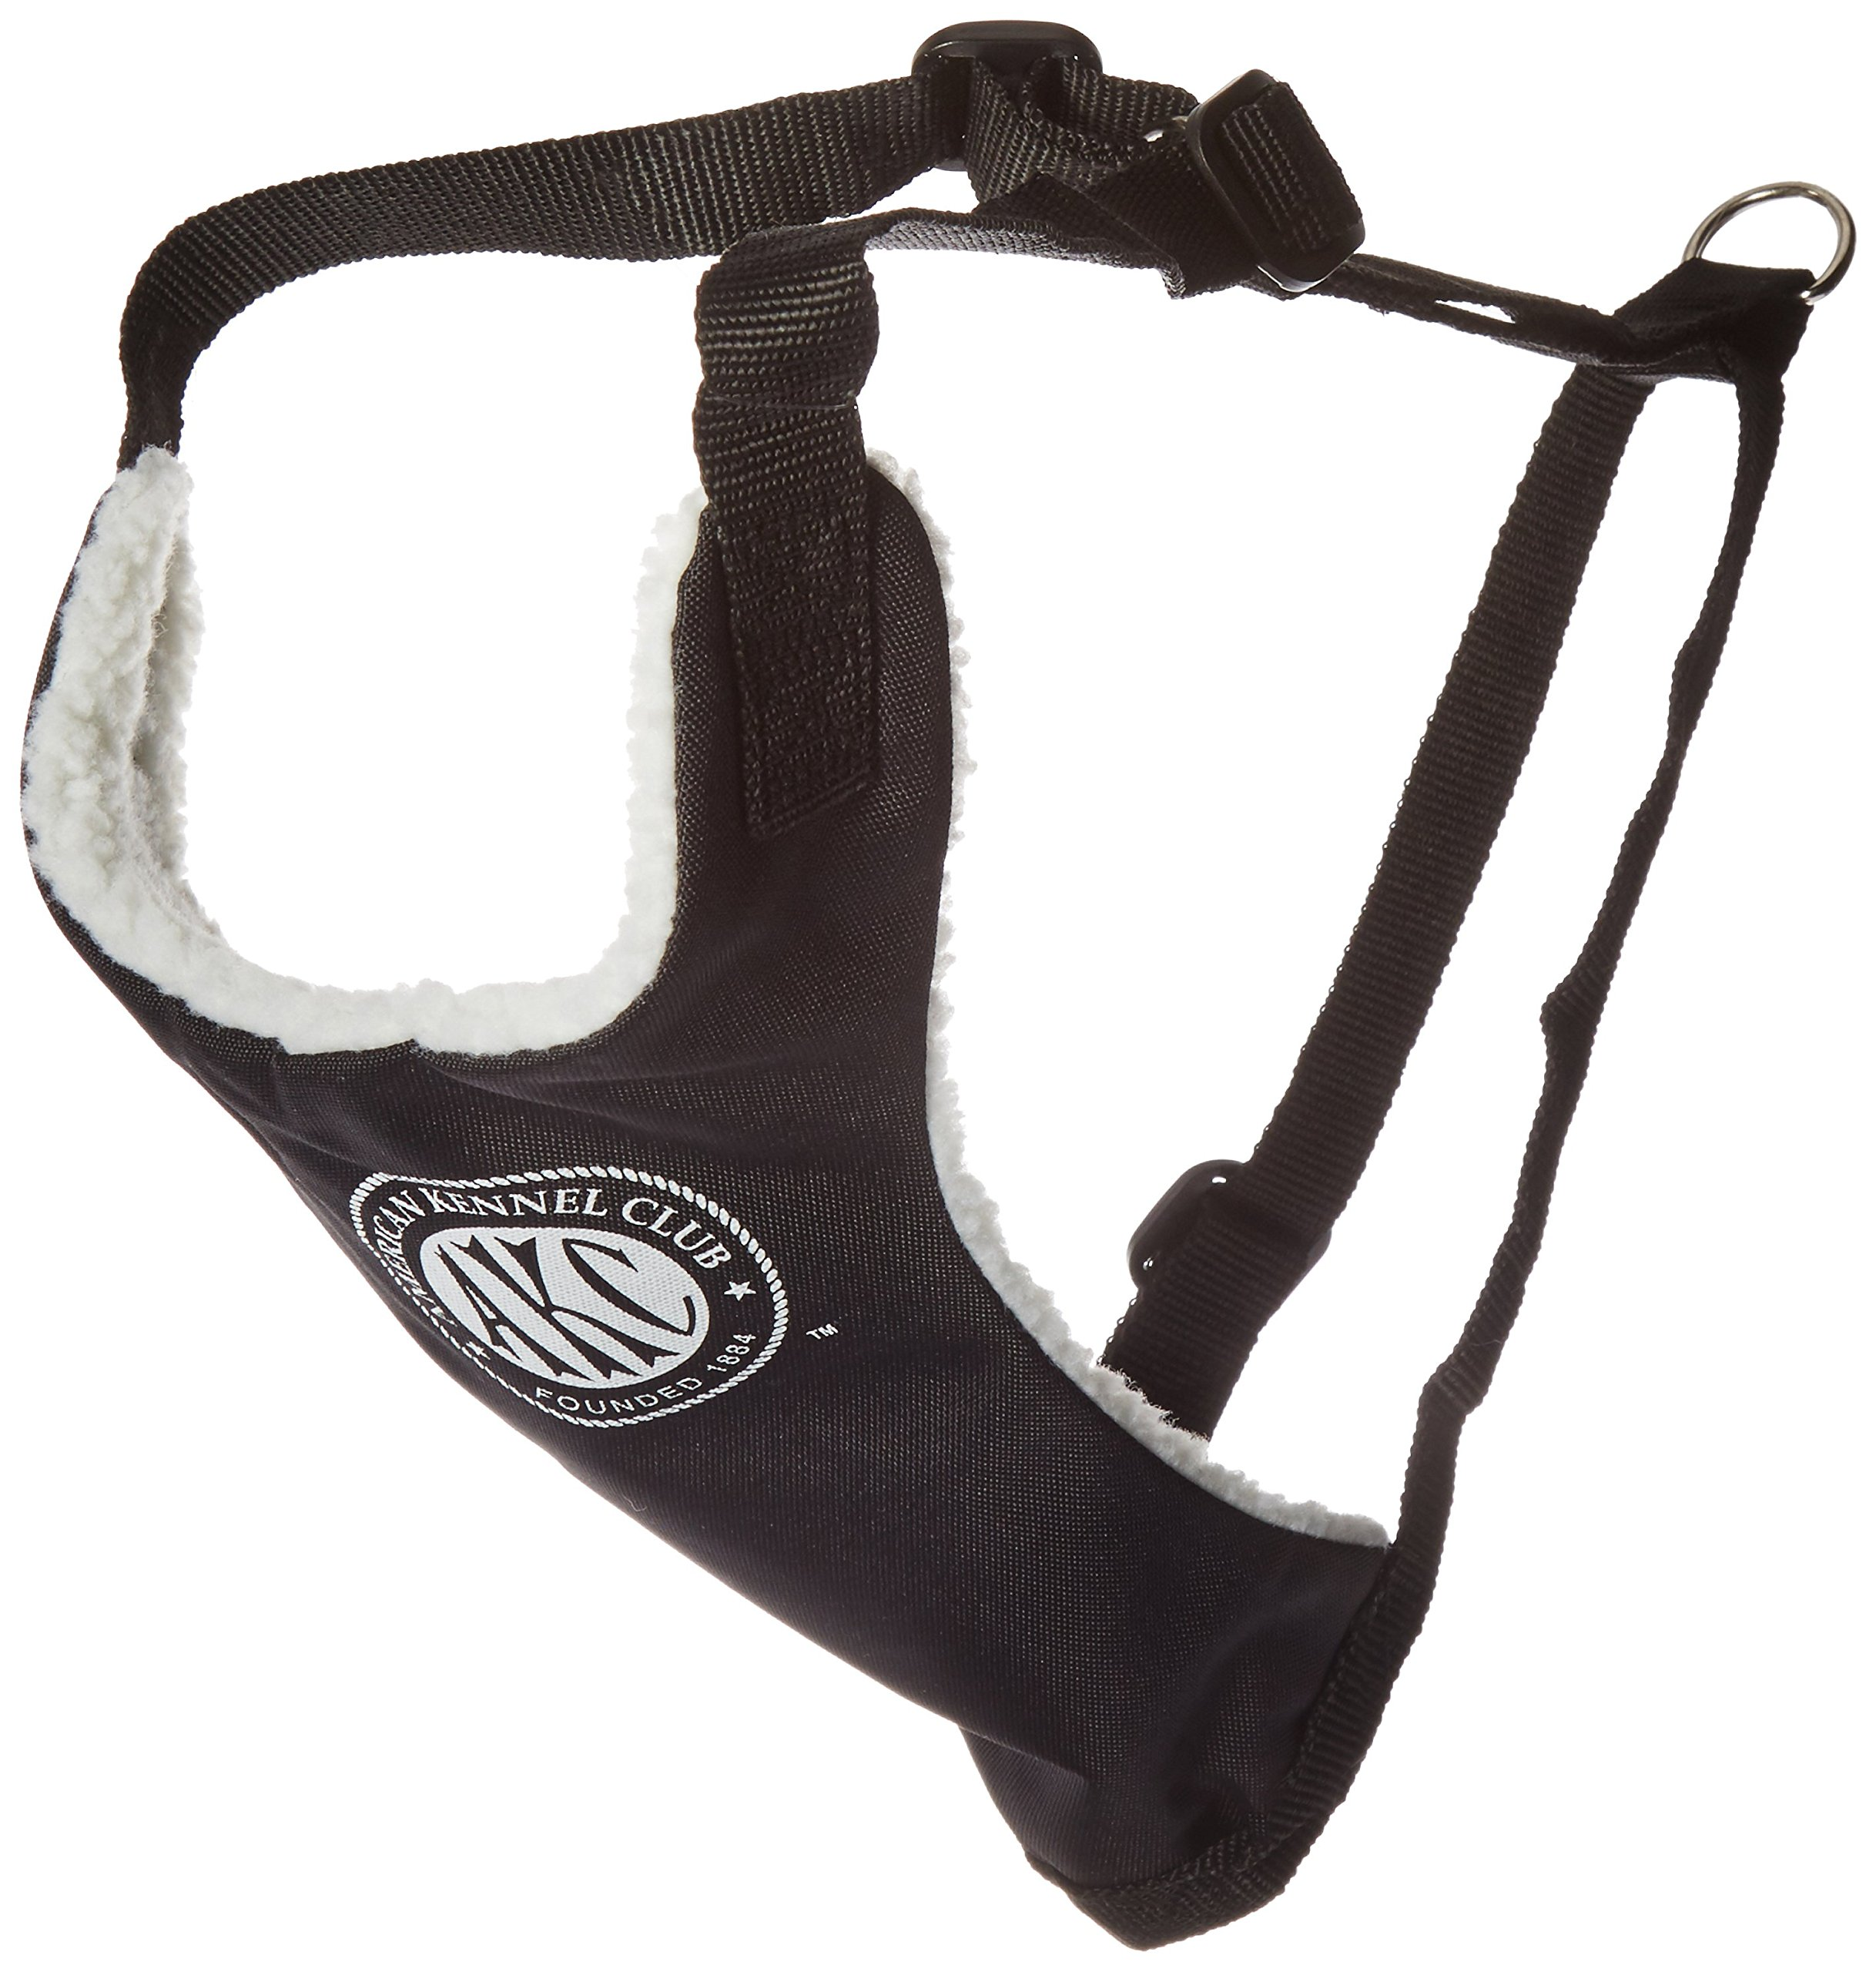 American Kennel Club 2-in-1 Seatbelt Harness, Small